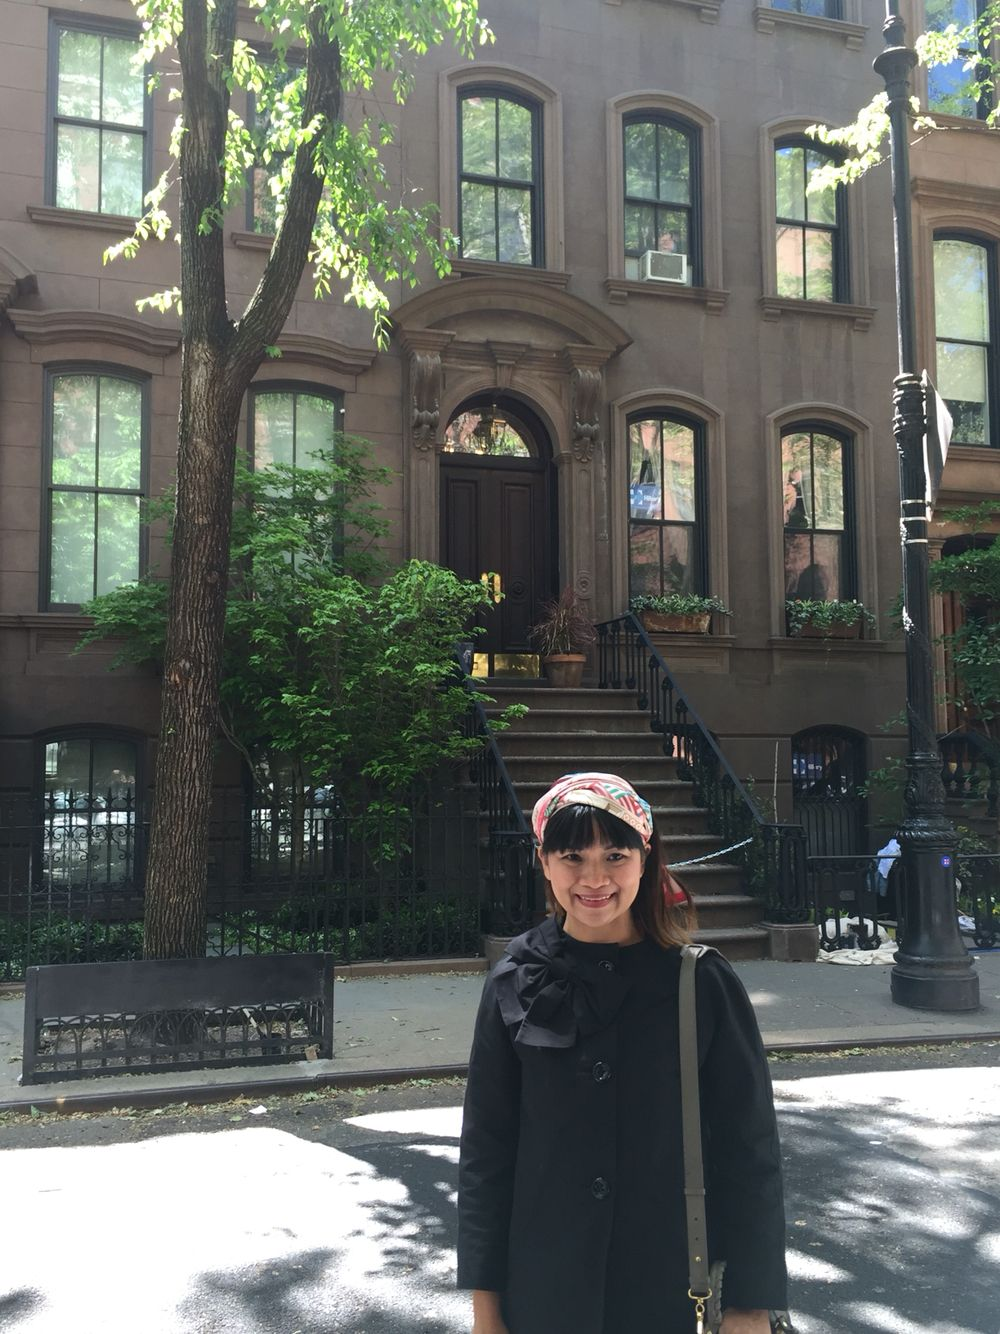 Carrie Bradshaw's house stoop #NYC #SATC #movielocation